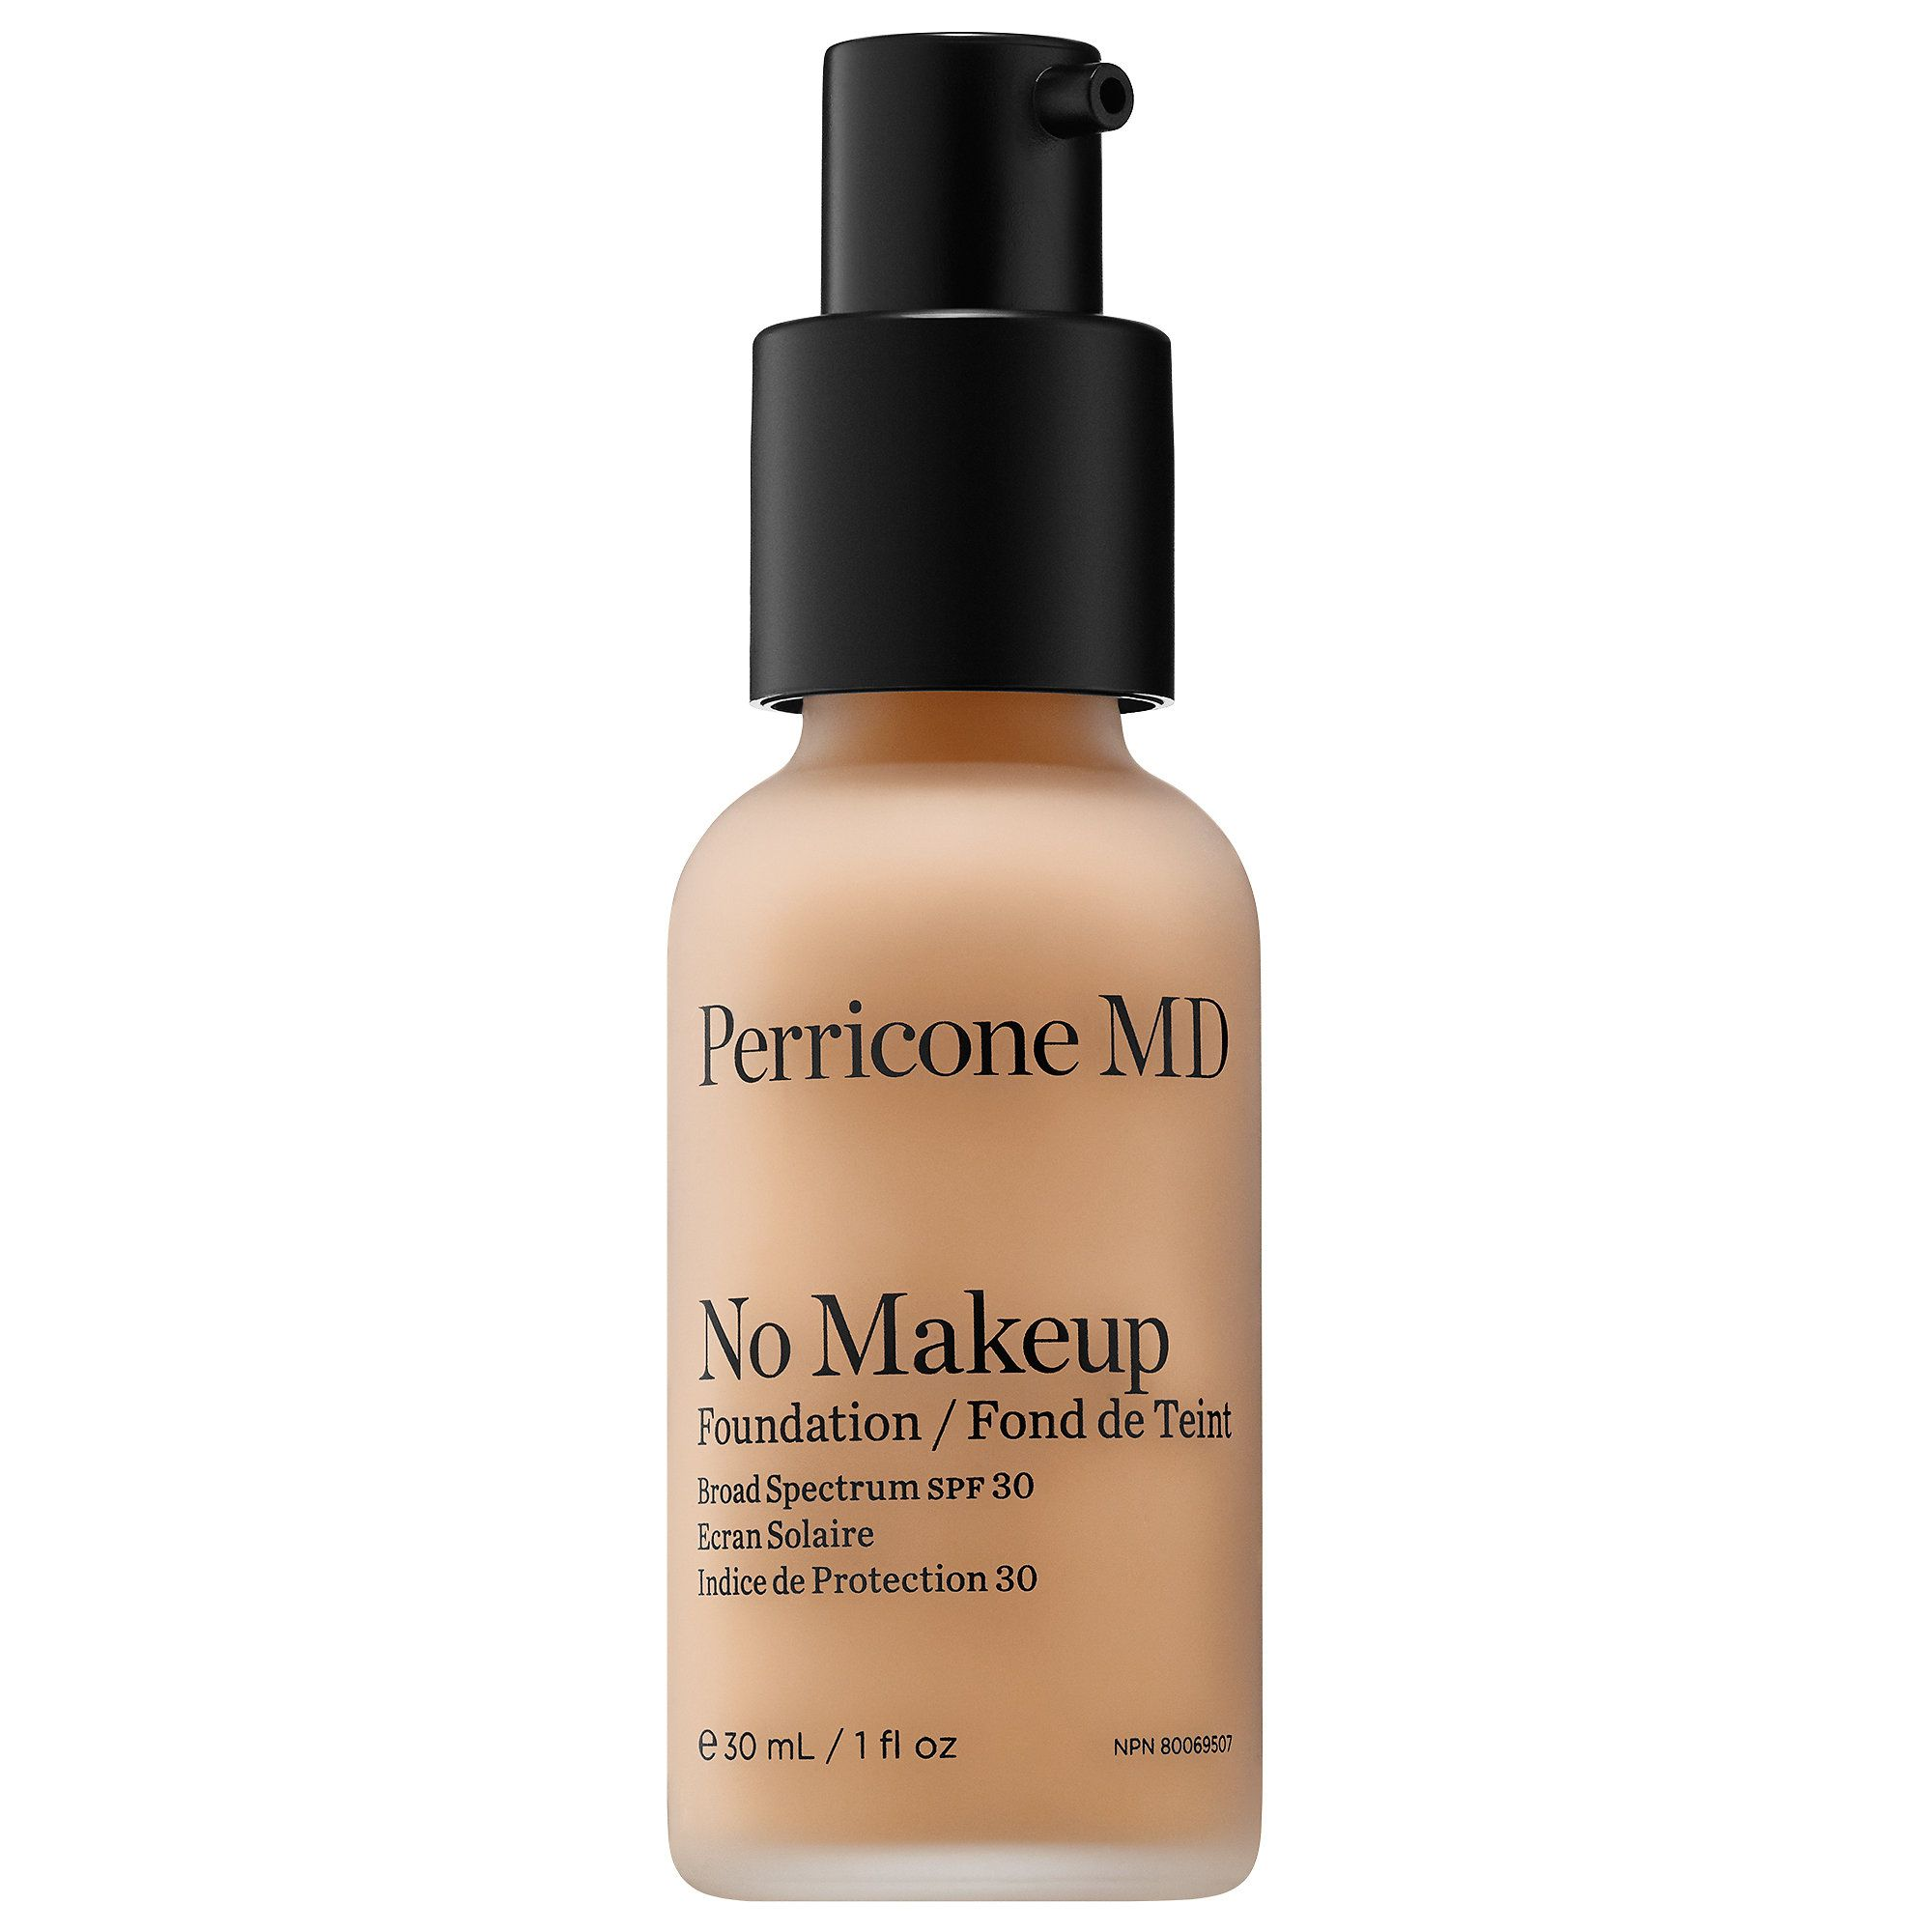 No Makeup Foundation Broad Specturm SPF 30 Perricone MD